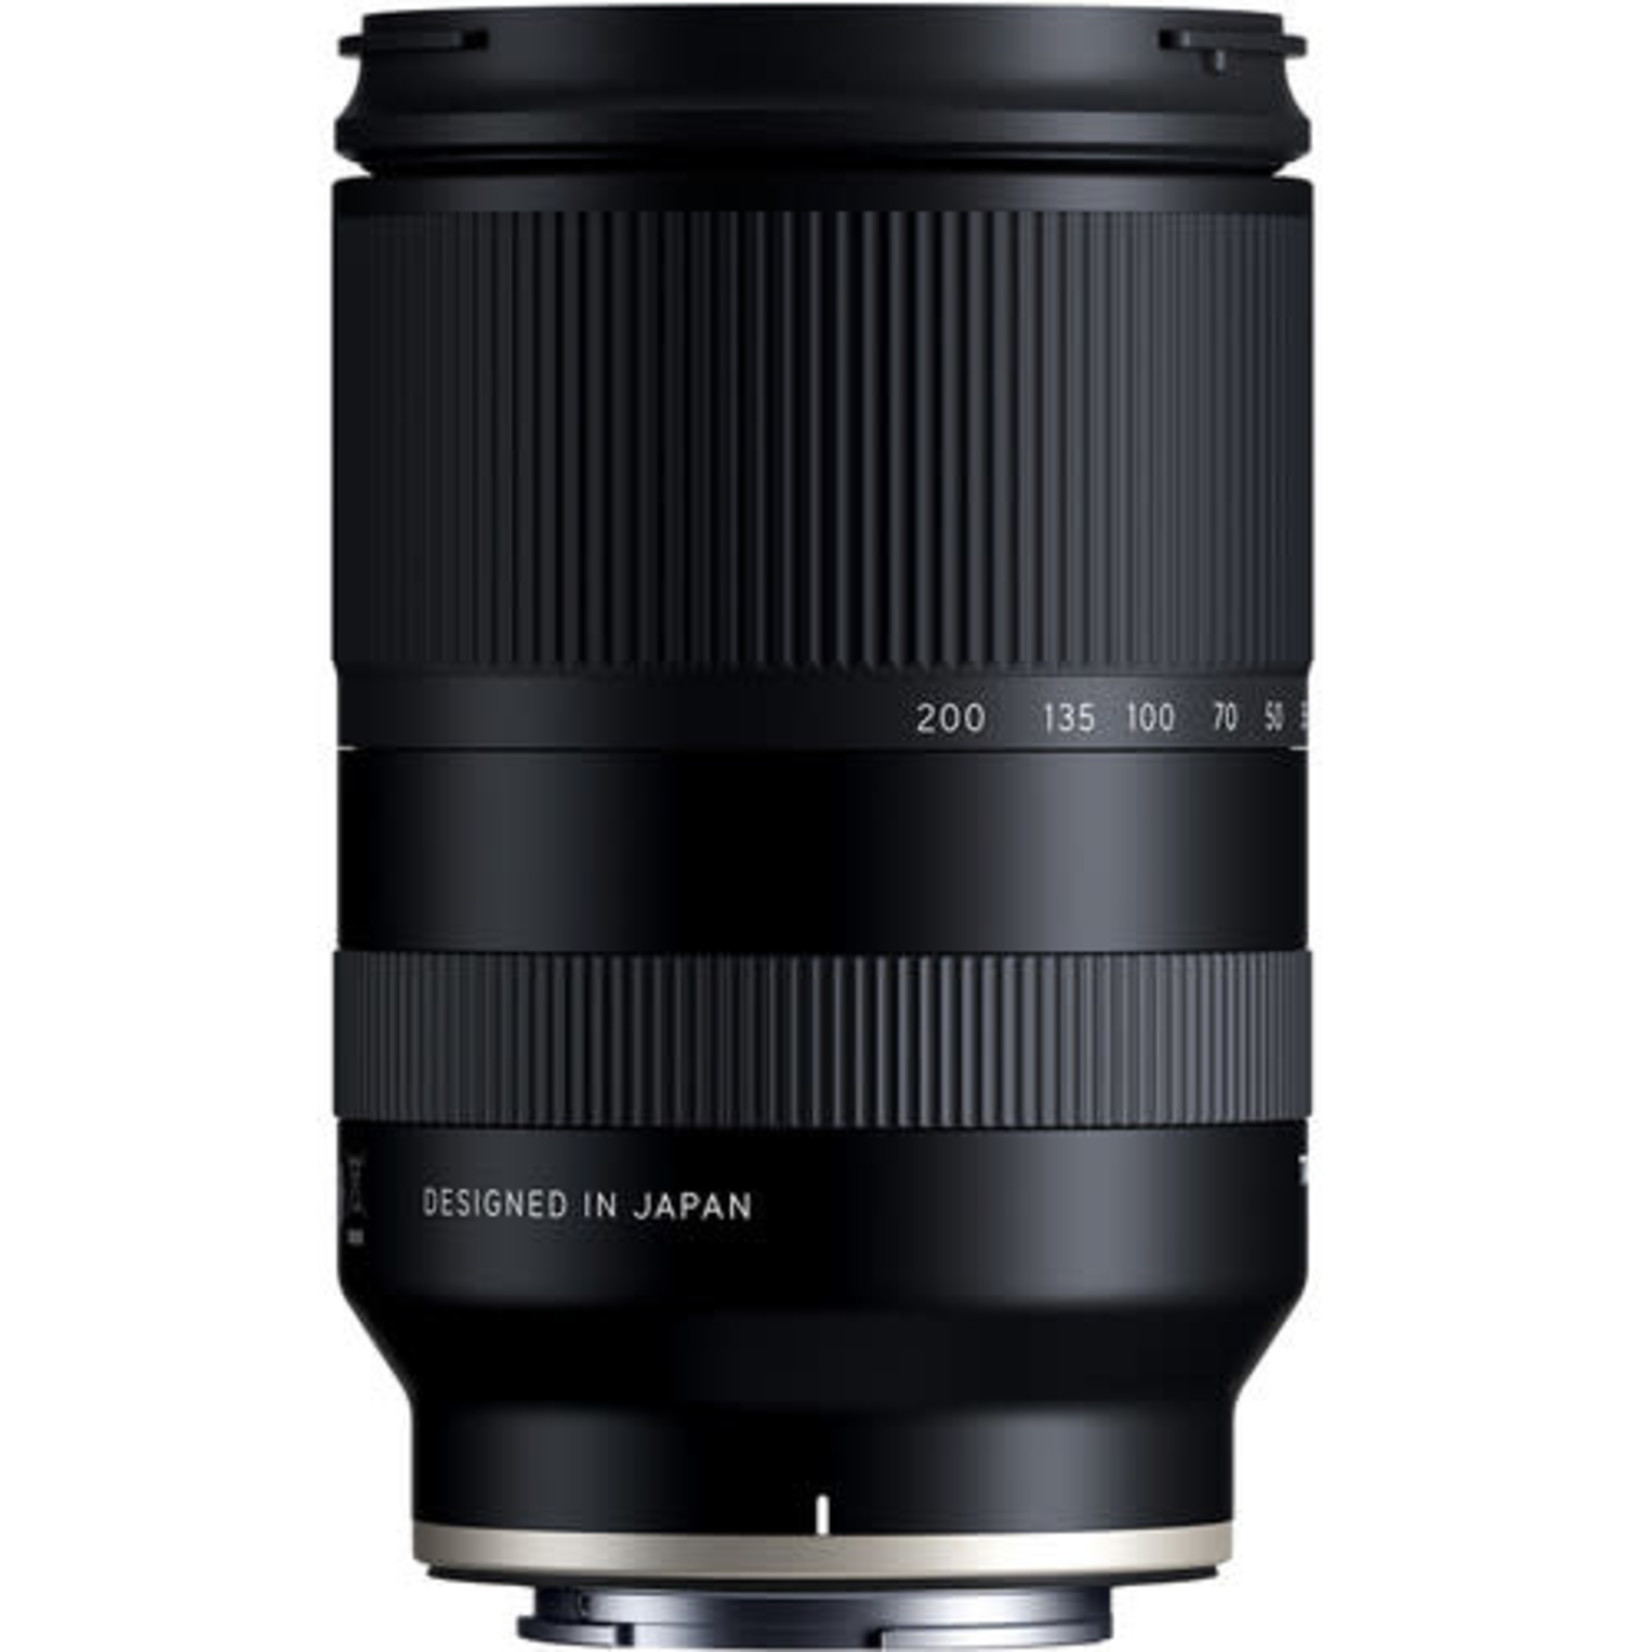 Tamron Tamron 28-200mm f/2.8-5.6 Di III RXD Lens for Sony E